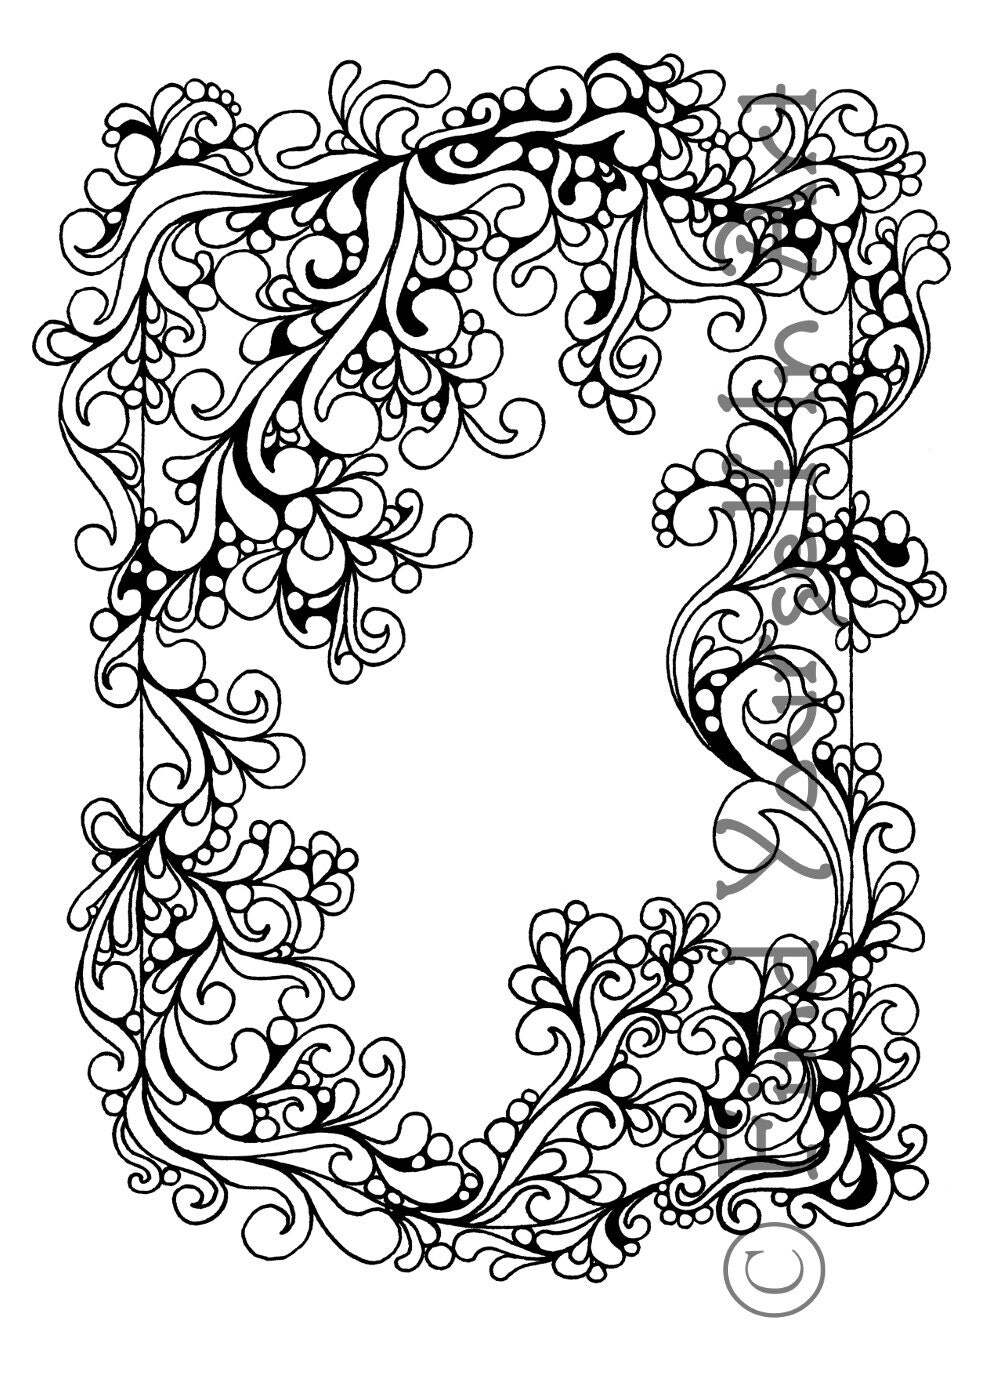 Adult Coloring Page Black and White Line Drawing Border